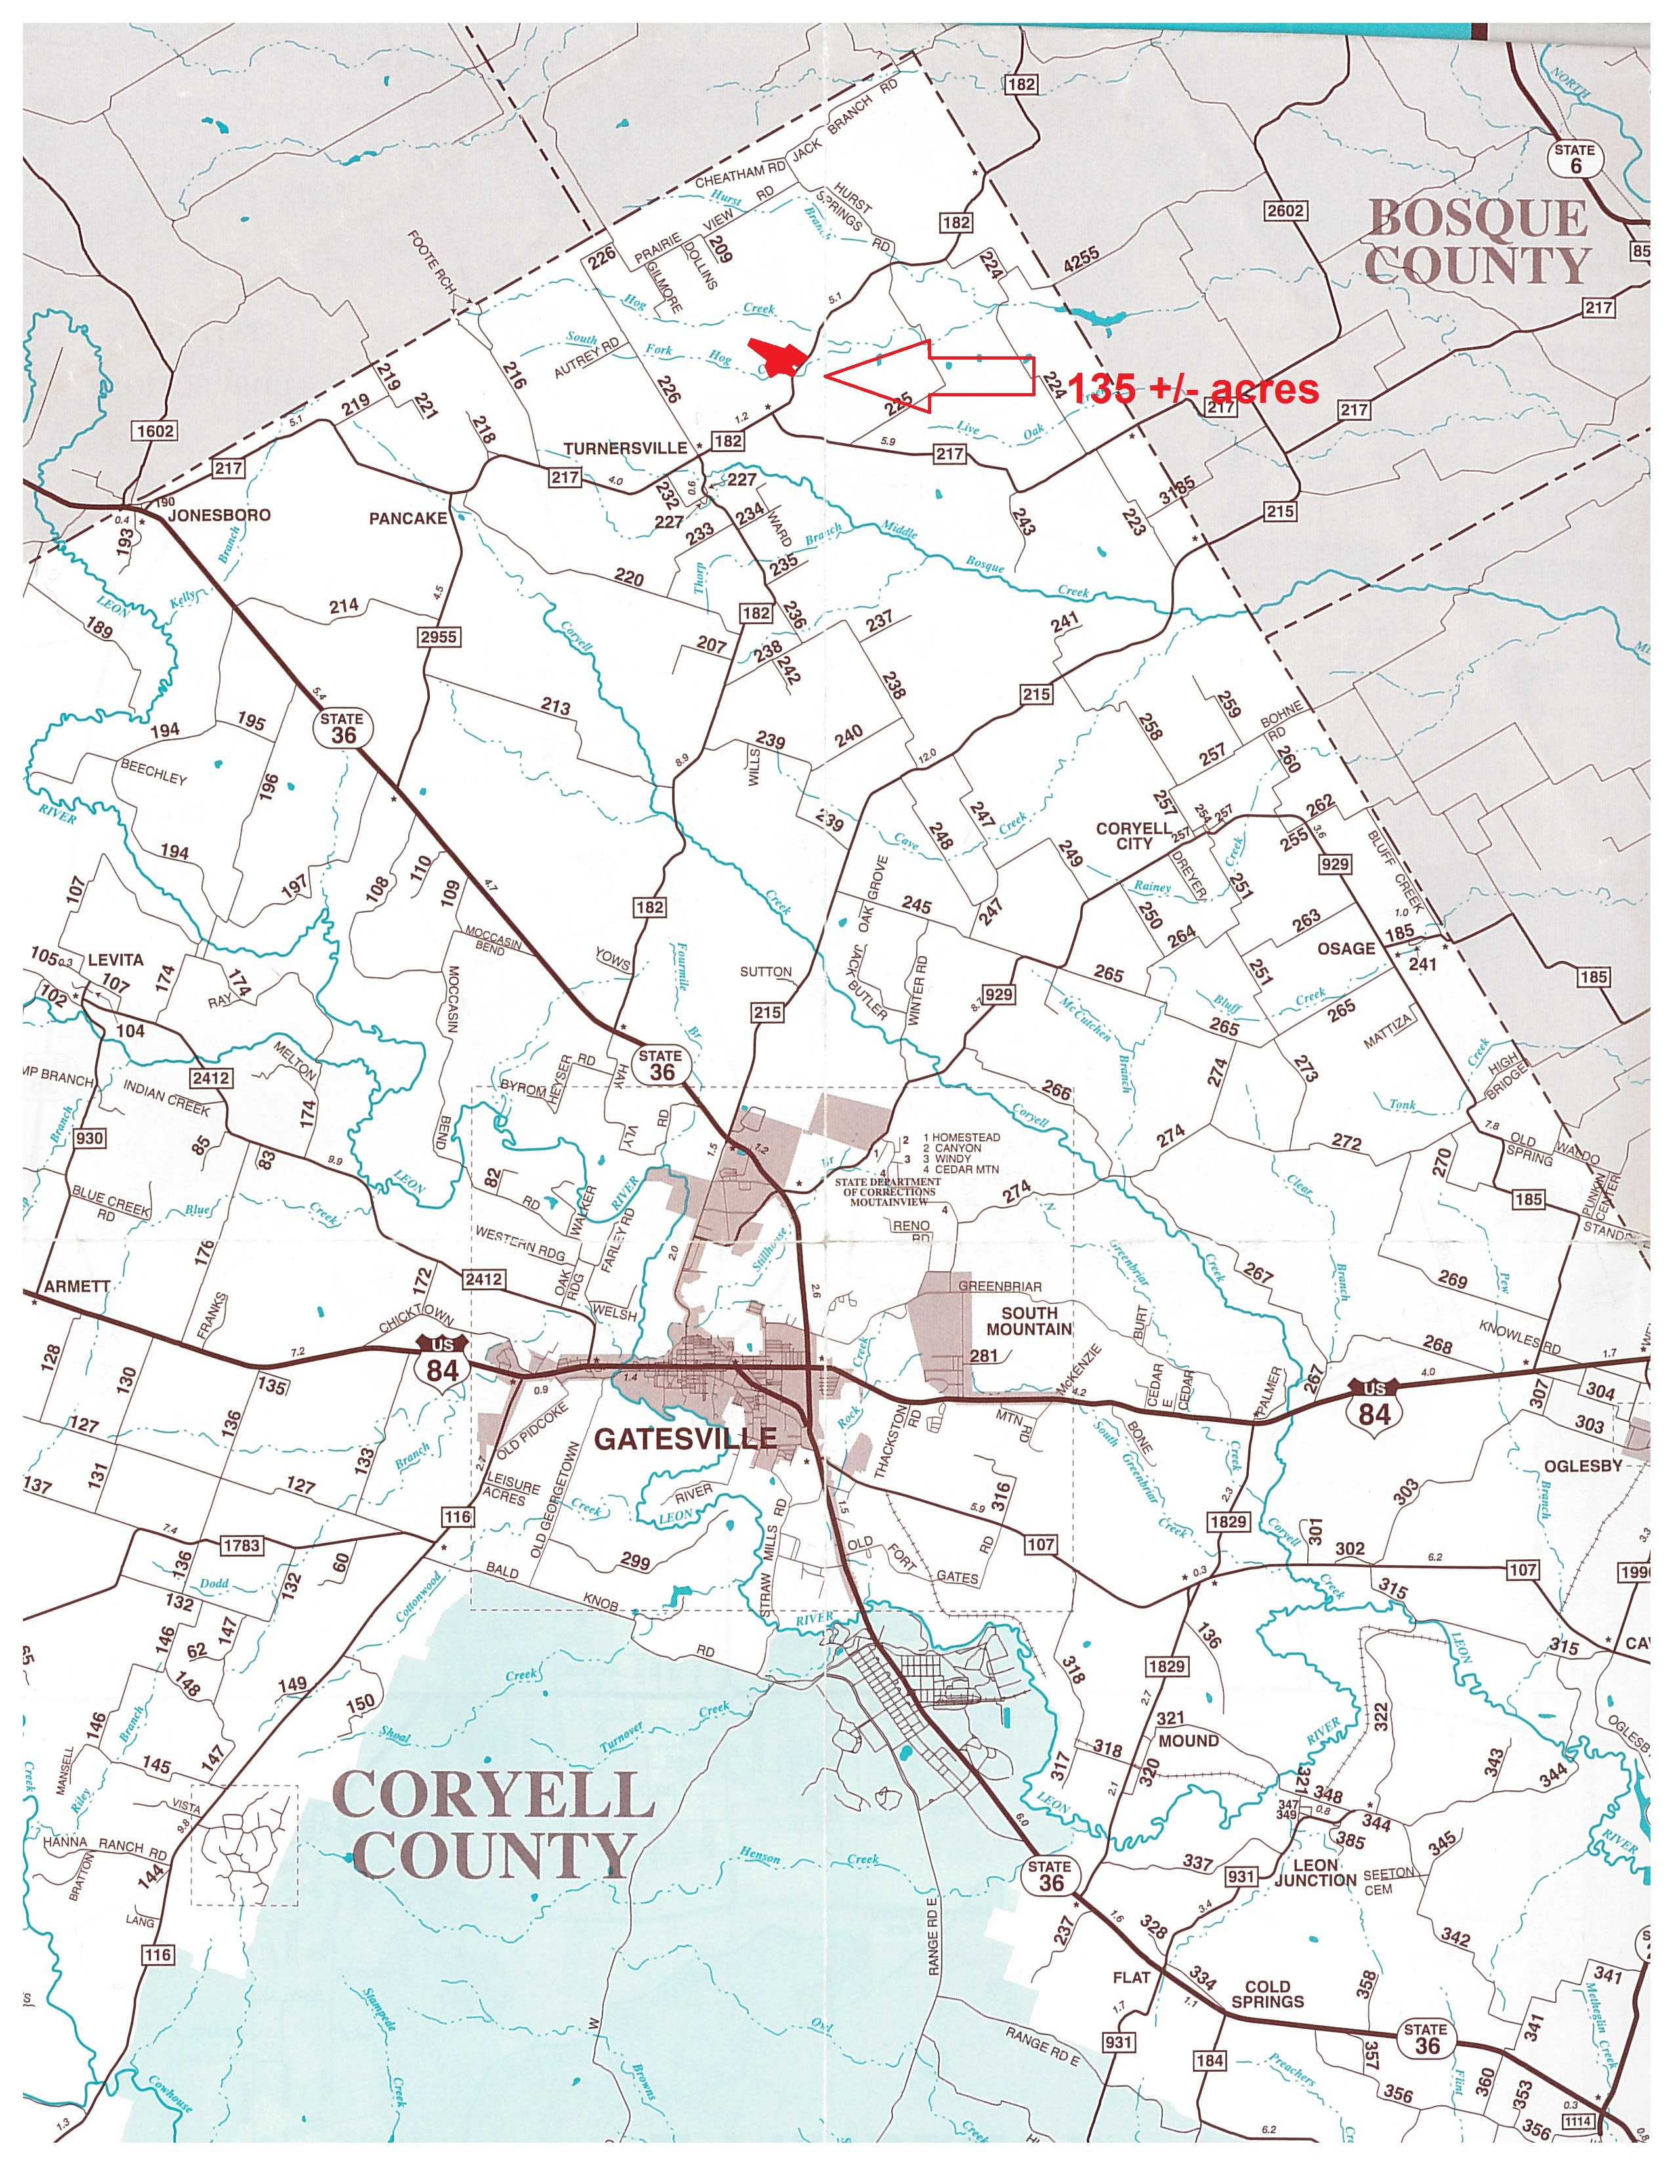 134 Acres In Coryell County, Texas - Coryell County Texas Map